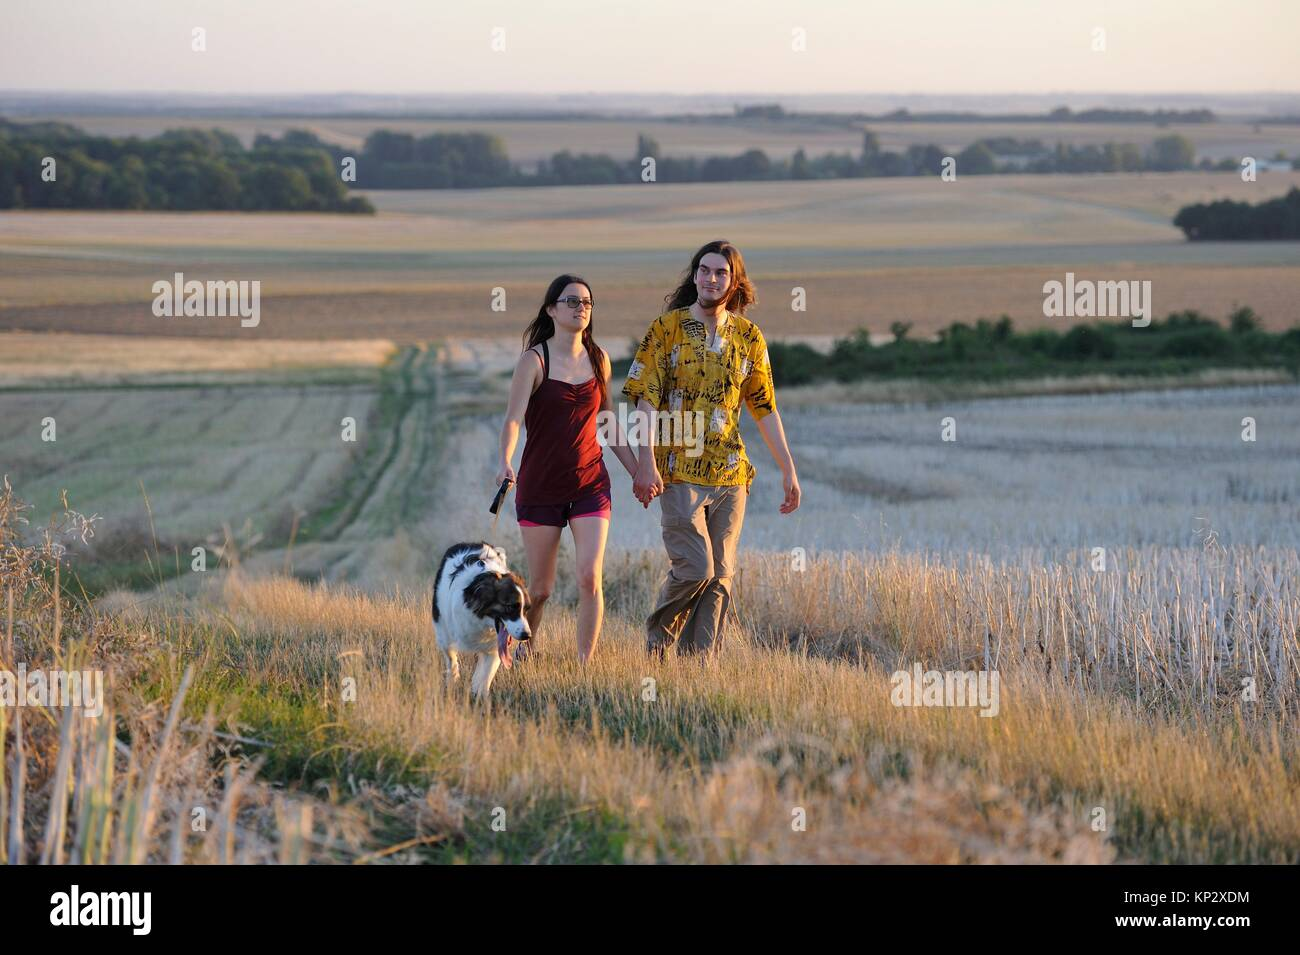 couple of young people walking with a dog around Mittainville, Yvelines department, Ile-de-France region, France, - Stock Image